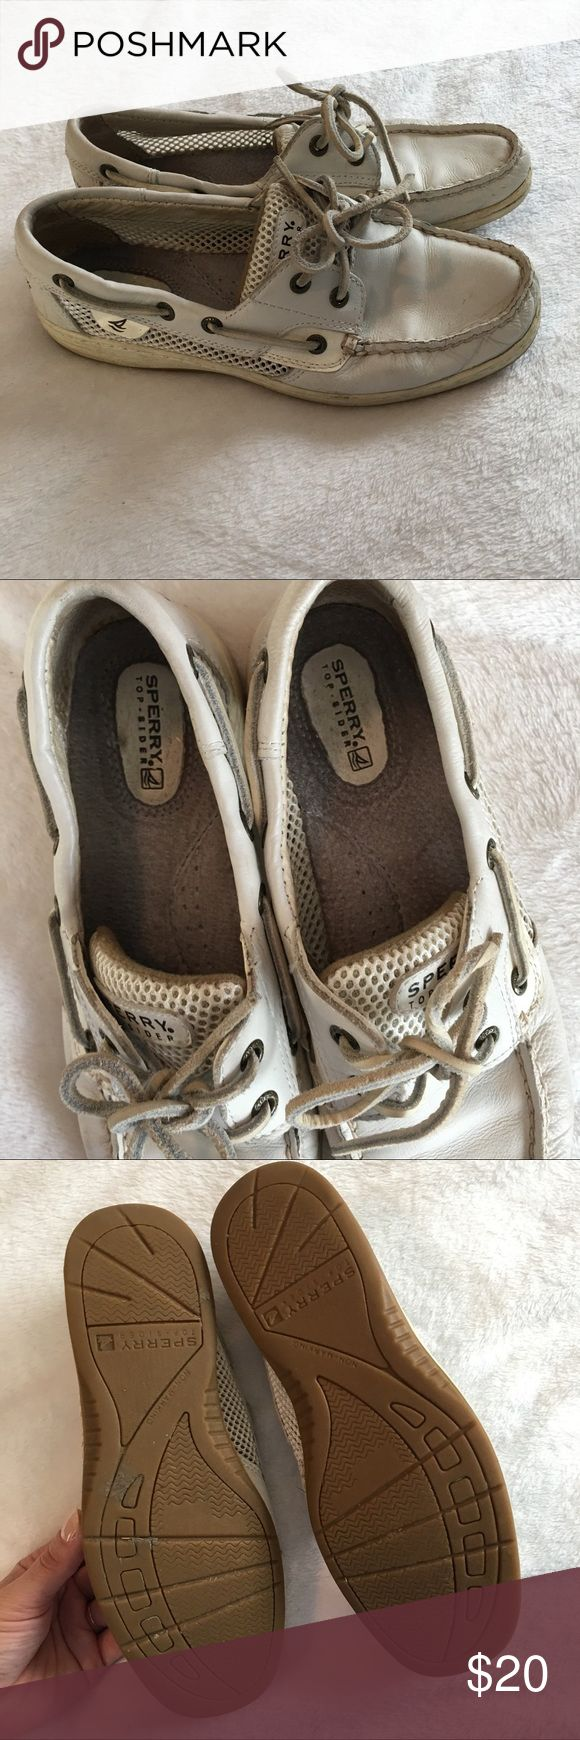 White Sperry Boat Shoes Pre-loved condition. Nothing wrong with them other than that they aren't as clean as they came. Sperry Top-Sider Shoes